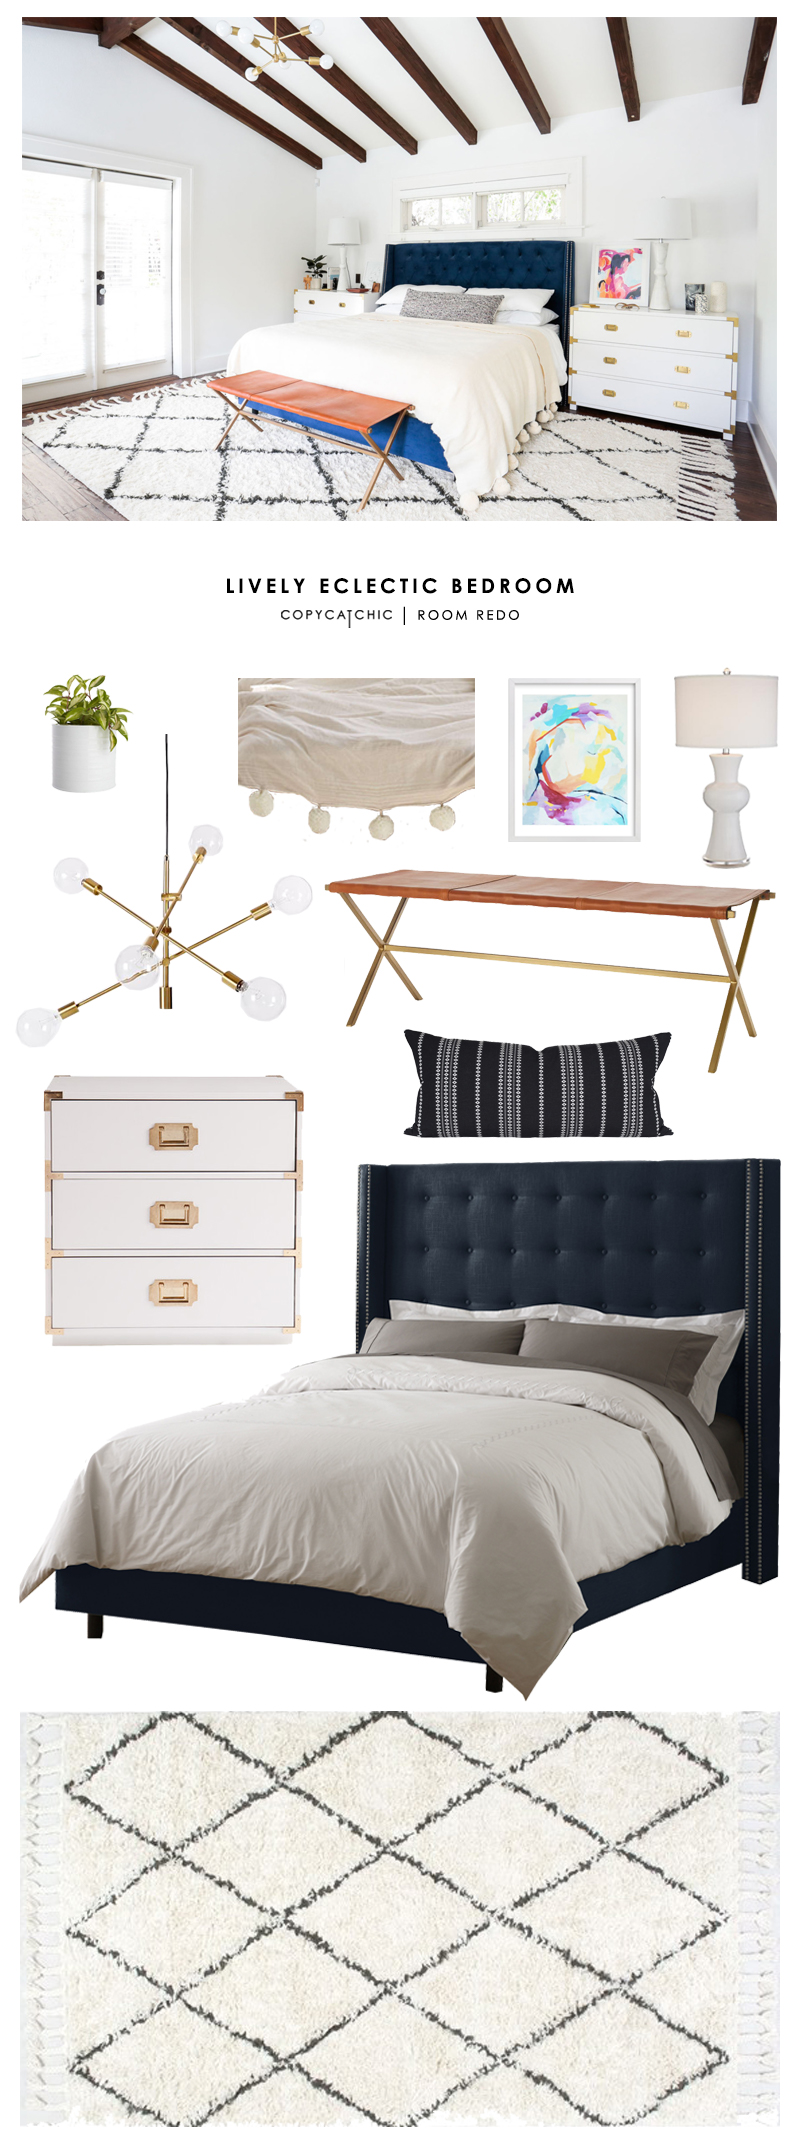 Copy Cat Chic Room Redo Lively Eclectic Bedroom Copy